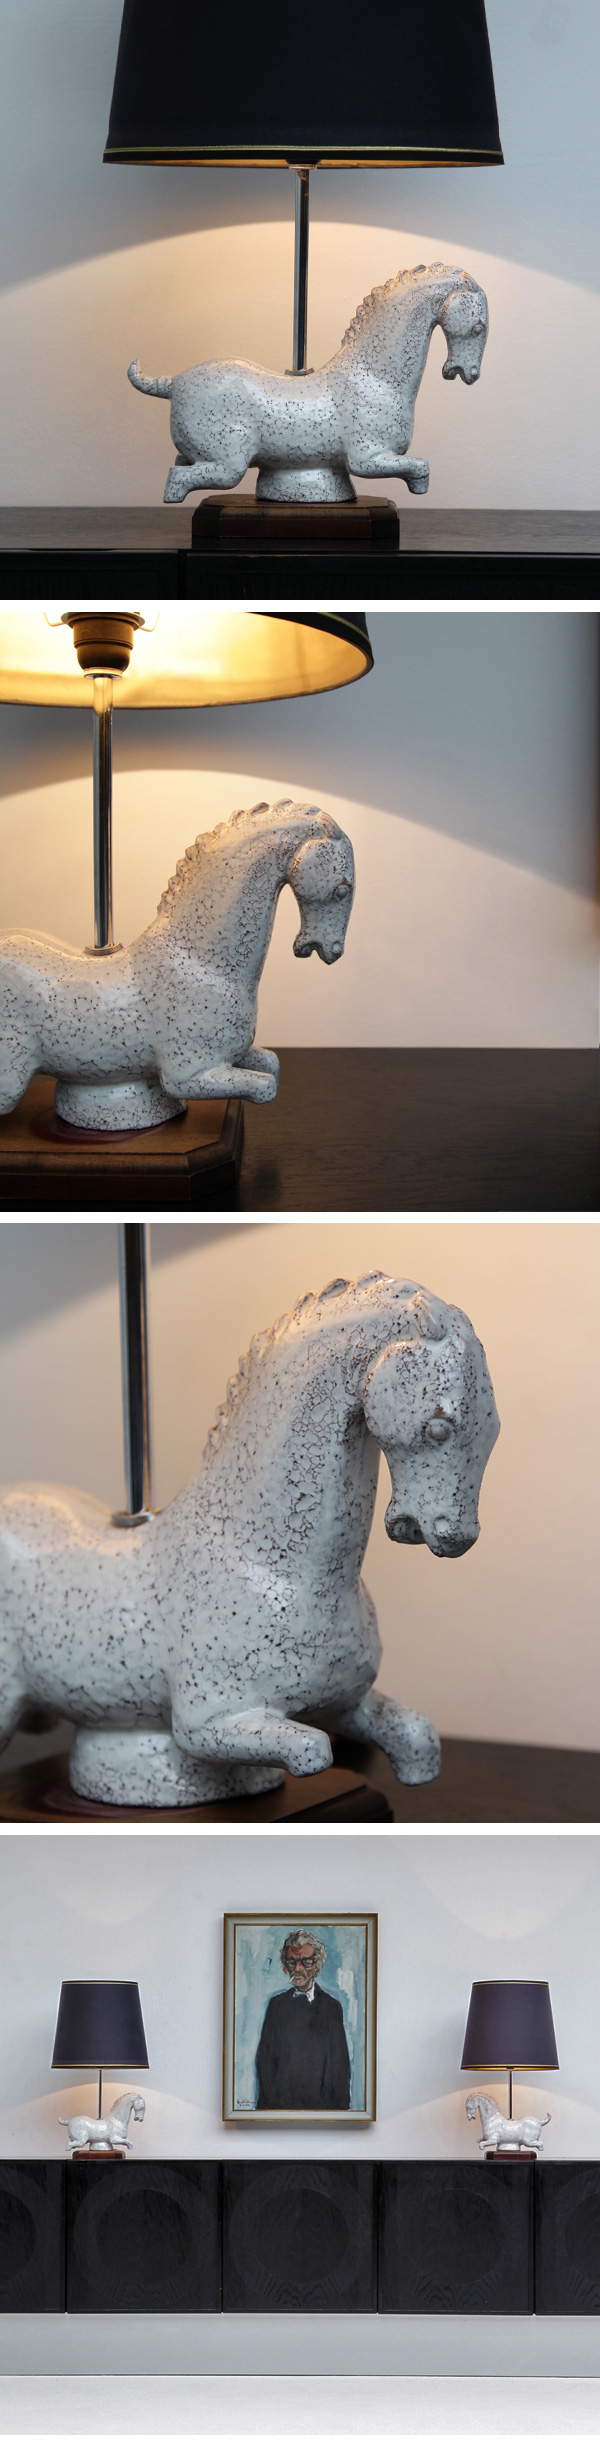 Ceramic, Table, Lamps, Dynasty, Horse